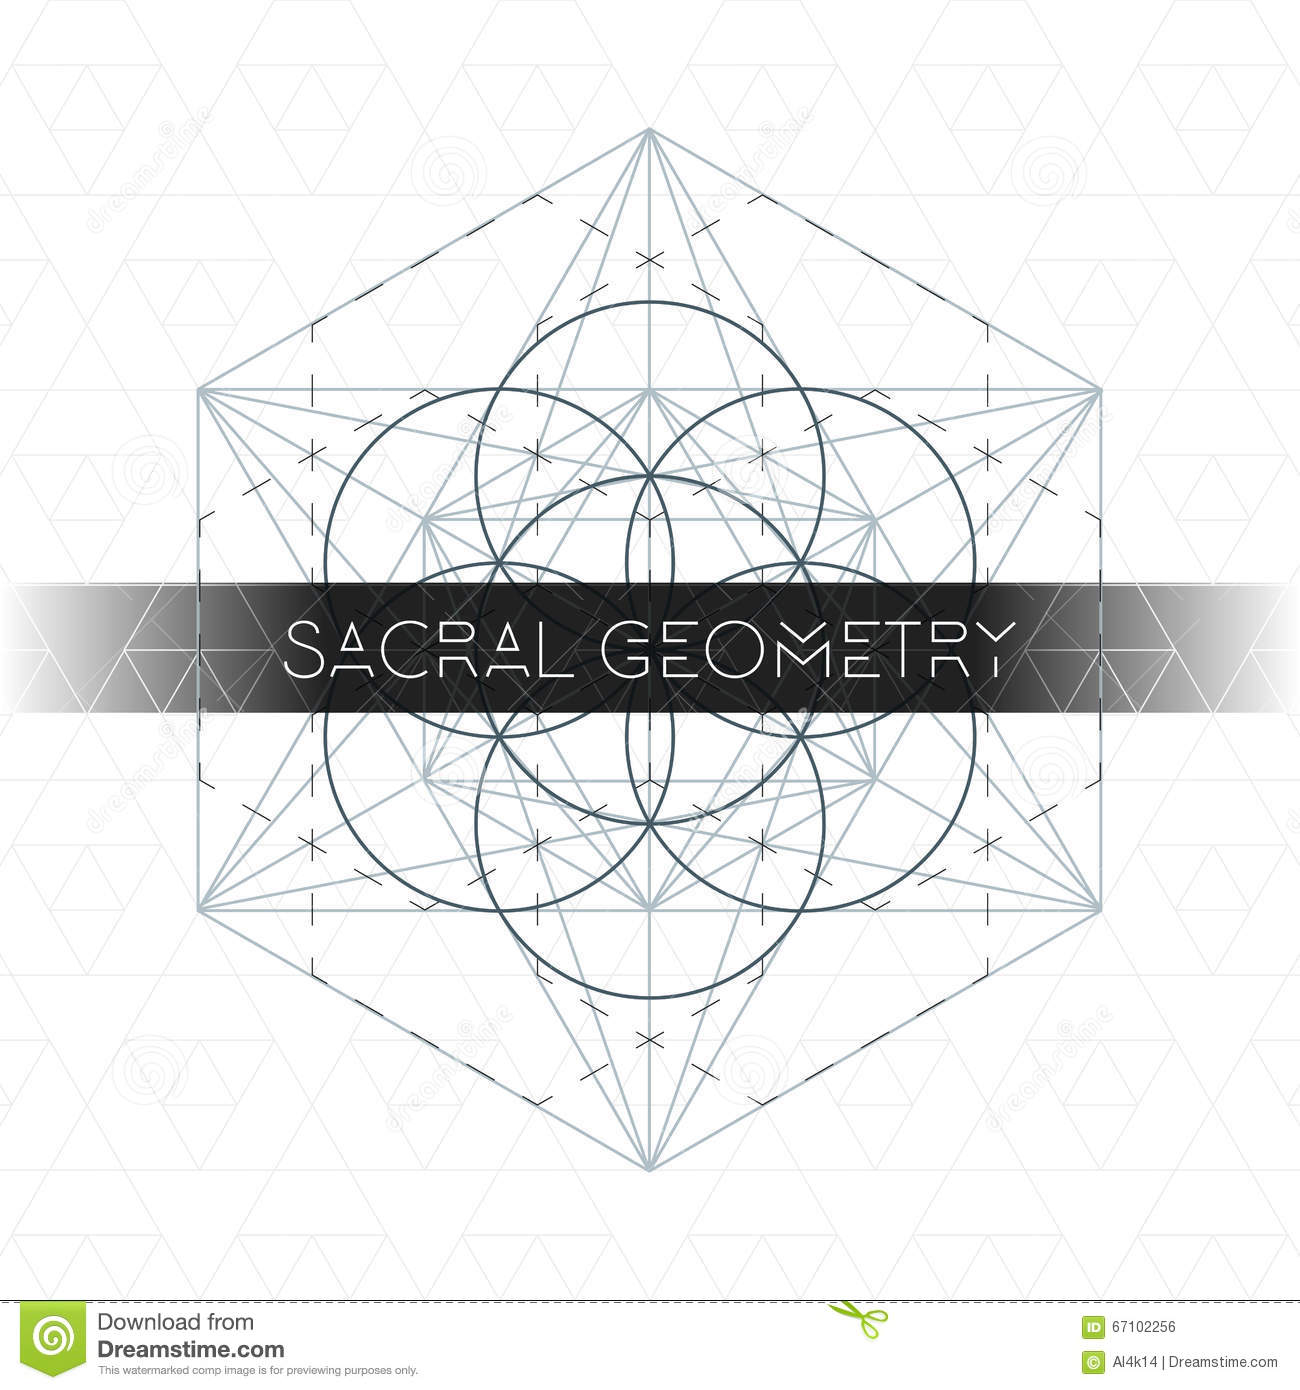 The Real Seed Of Life Diagram Wiring For Professional Embryo Germination In Metatron Outline Sacred Geometry Stock Vector Rh Dreamstime Com Corn